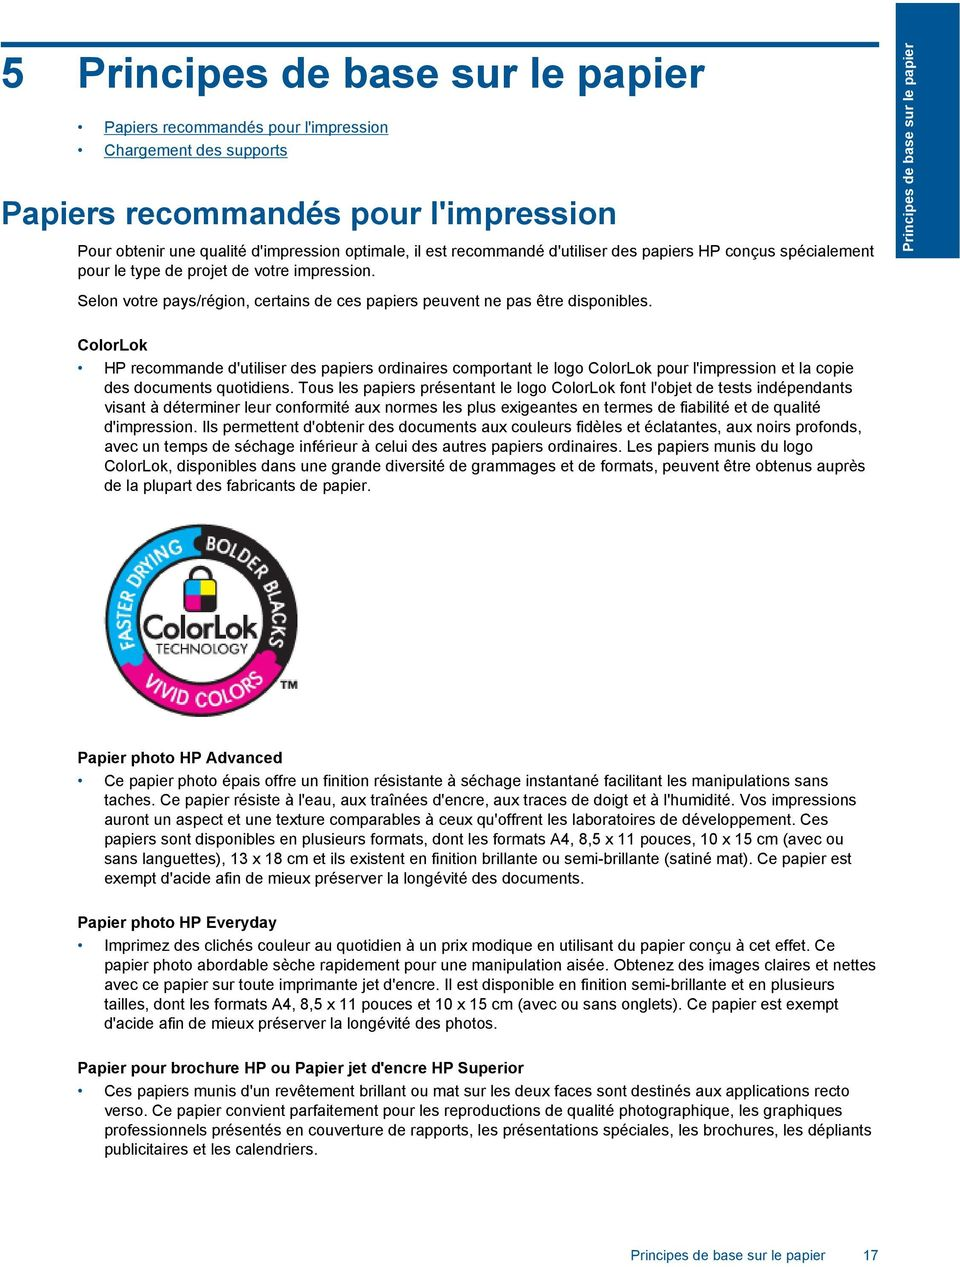 Principes de base sur le papier ColorLok HP recommande d'utiliser des papiers ordinaires comportant le logo ColorLok pour l'impression et la copie des documents quotidiens.